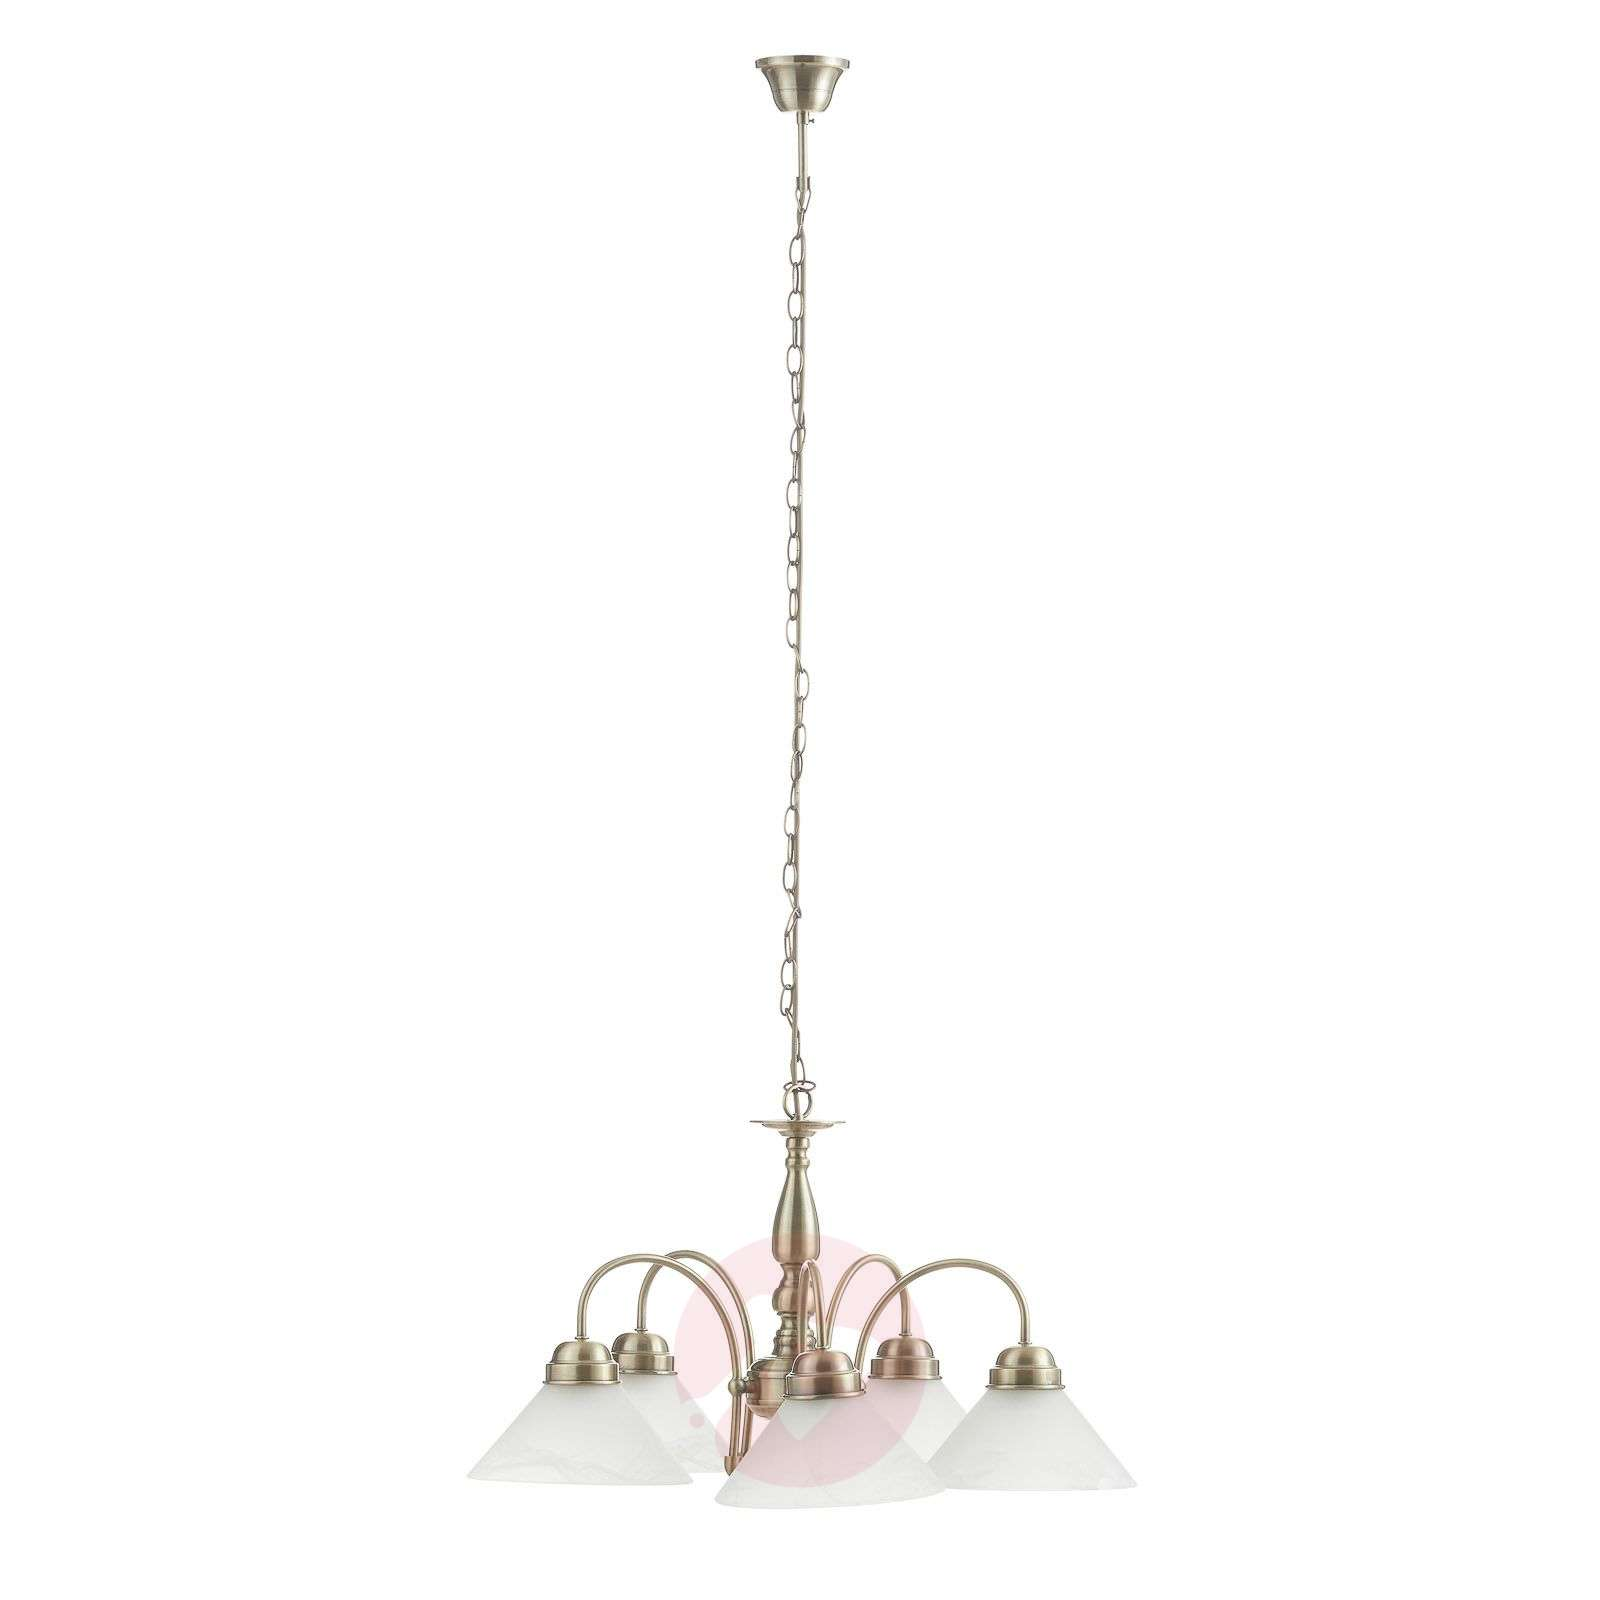 Antwerpen Hanging Light Five-Bulbs-4508296-01